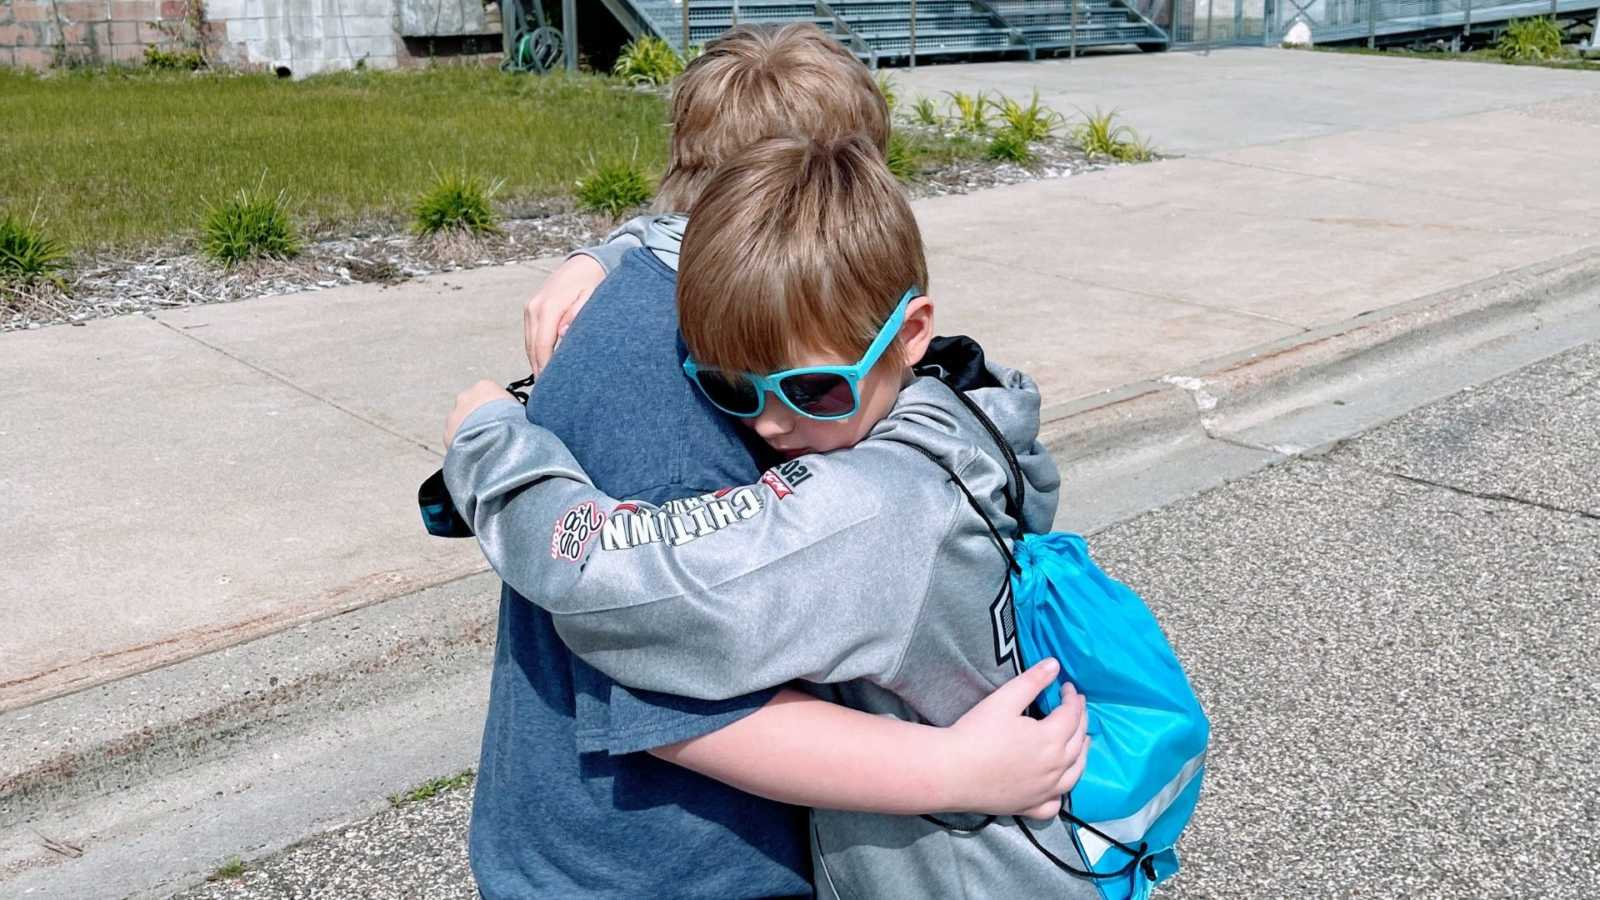 Two brothers embrace in a tight hug while on a walk outside